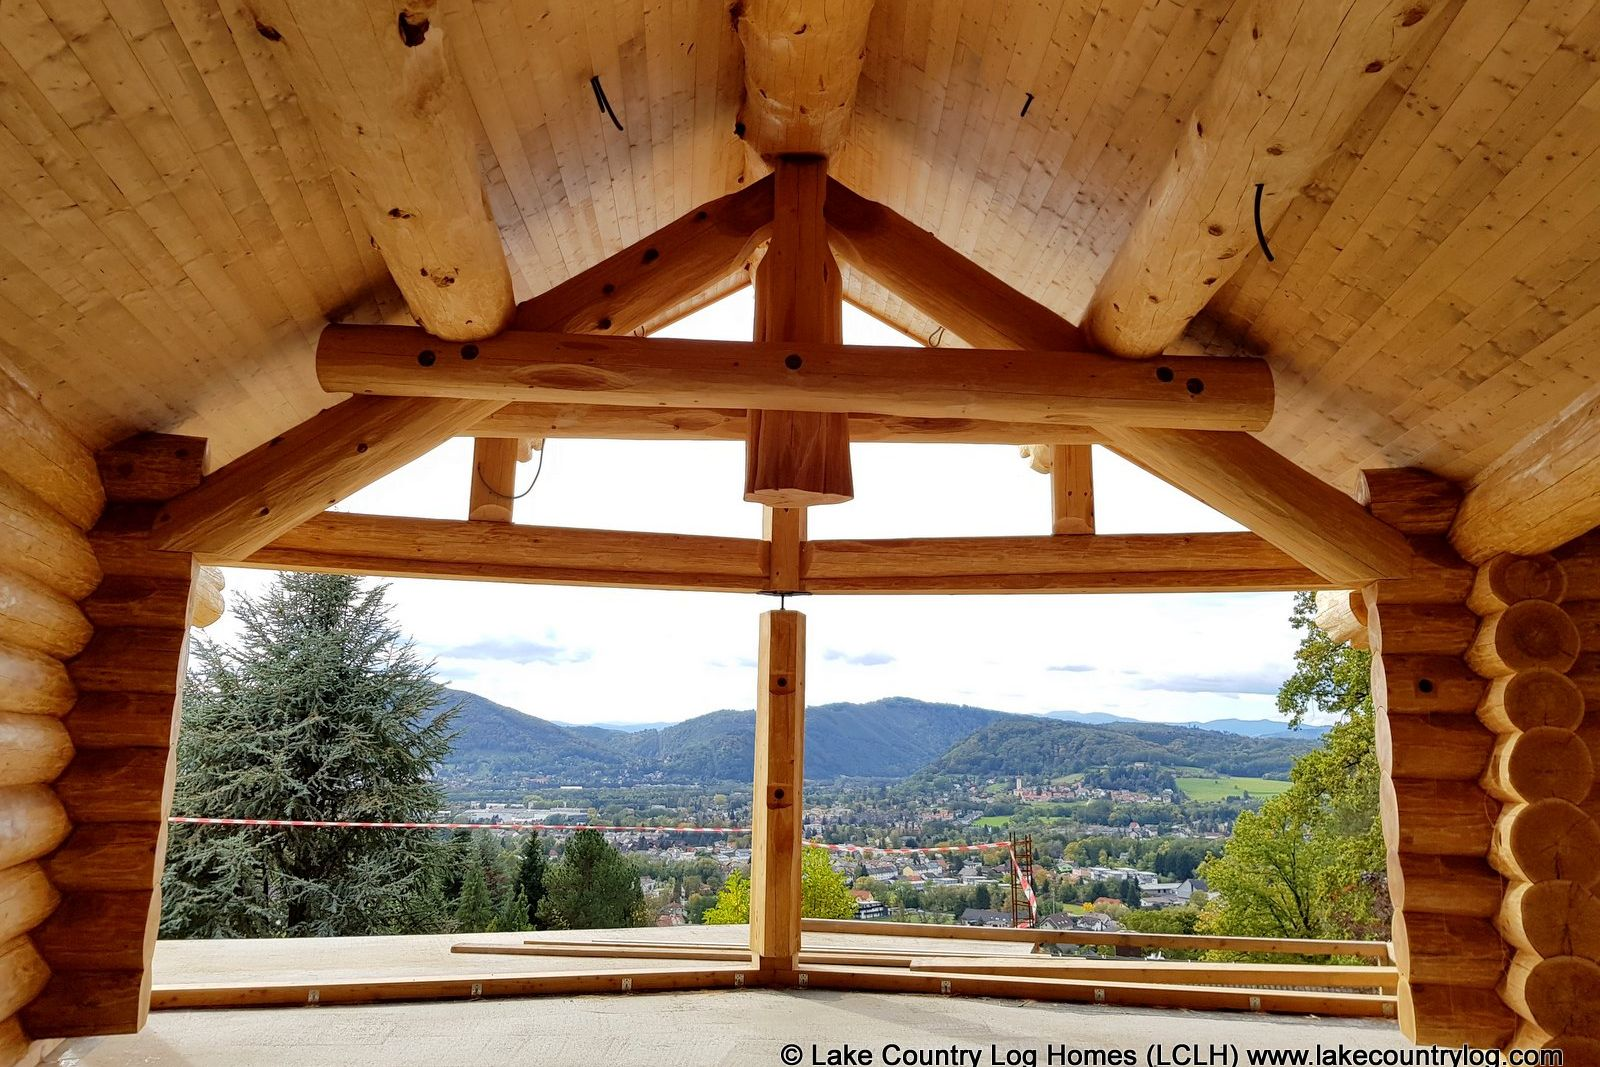 Log Home Joinery, Notches and Tails